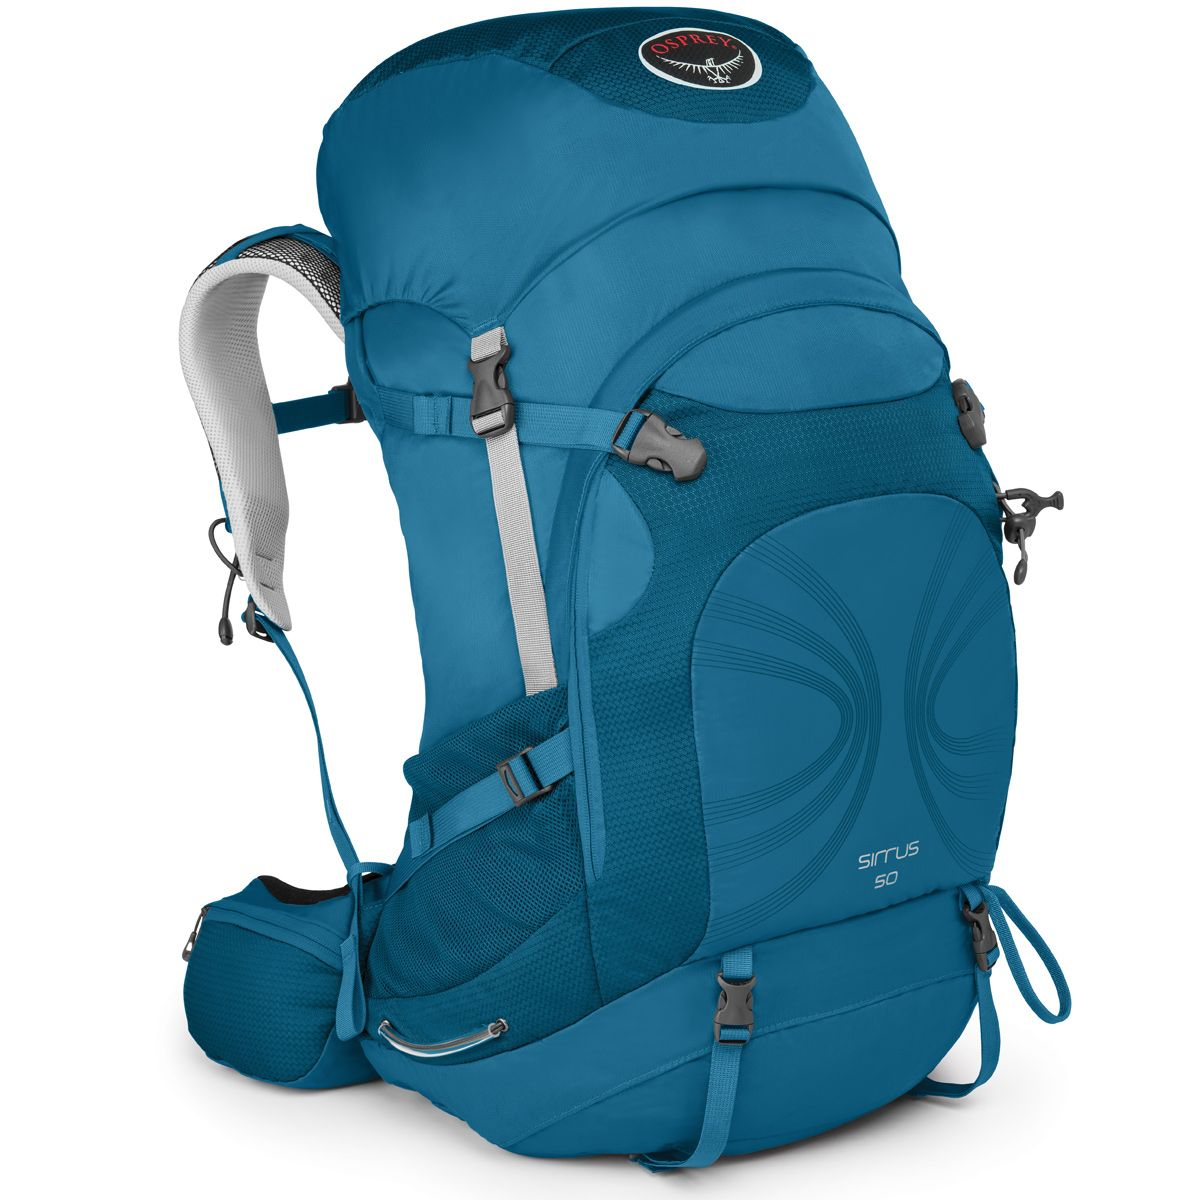 47a6189879a OSPREY Women s Sirrus 50 Backpack - Eastern Mountain Sports   Travel ...